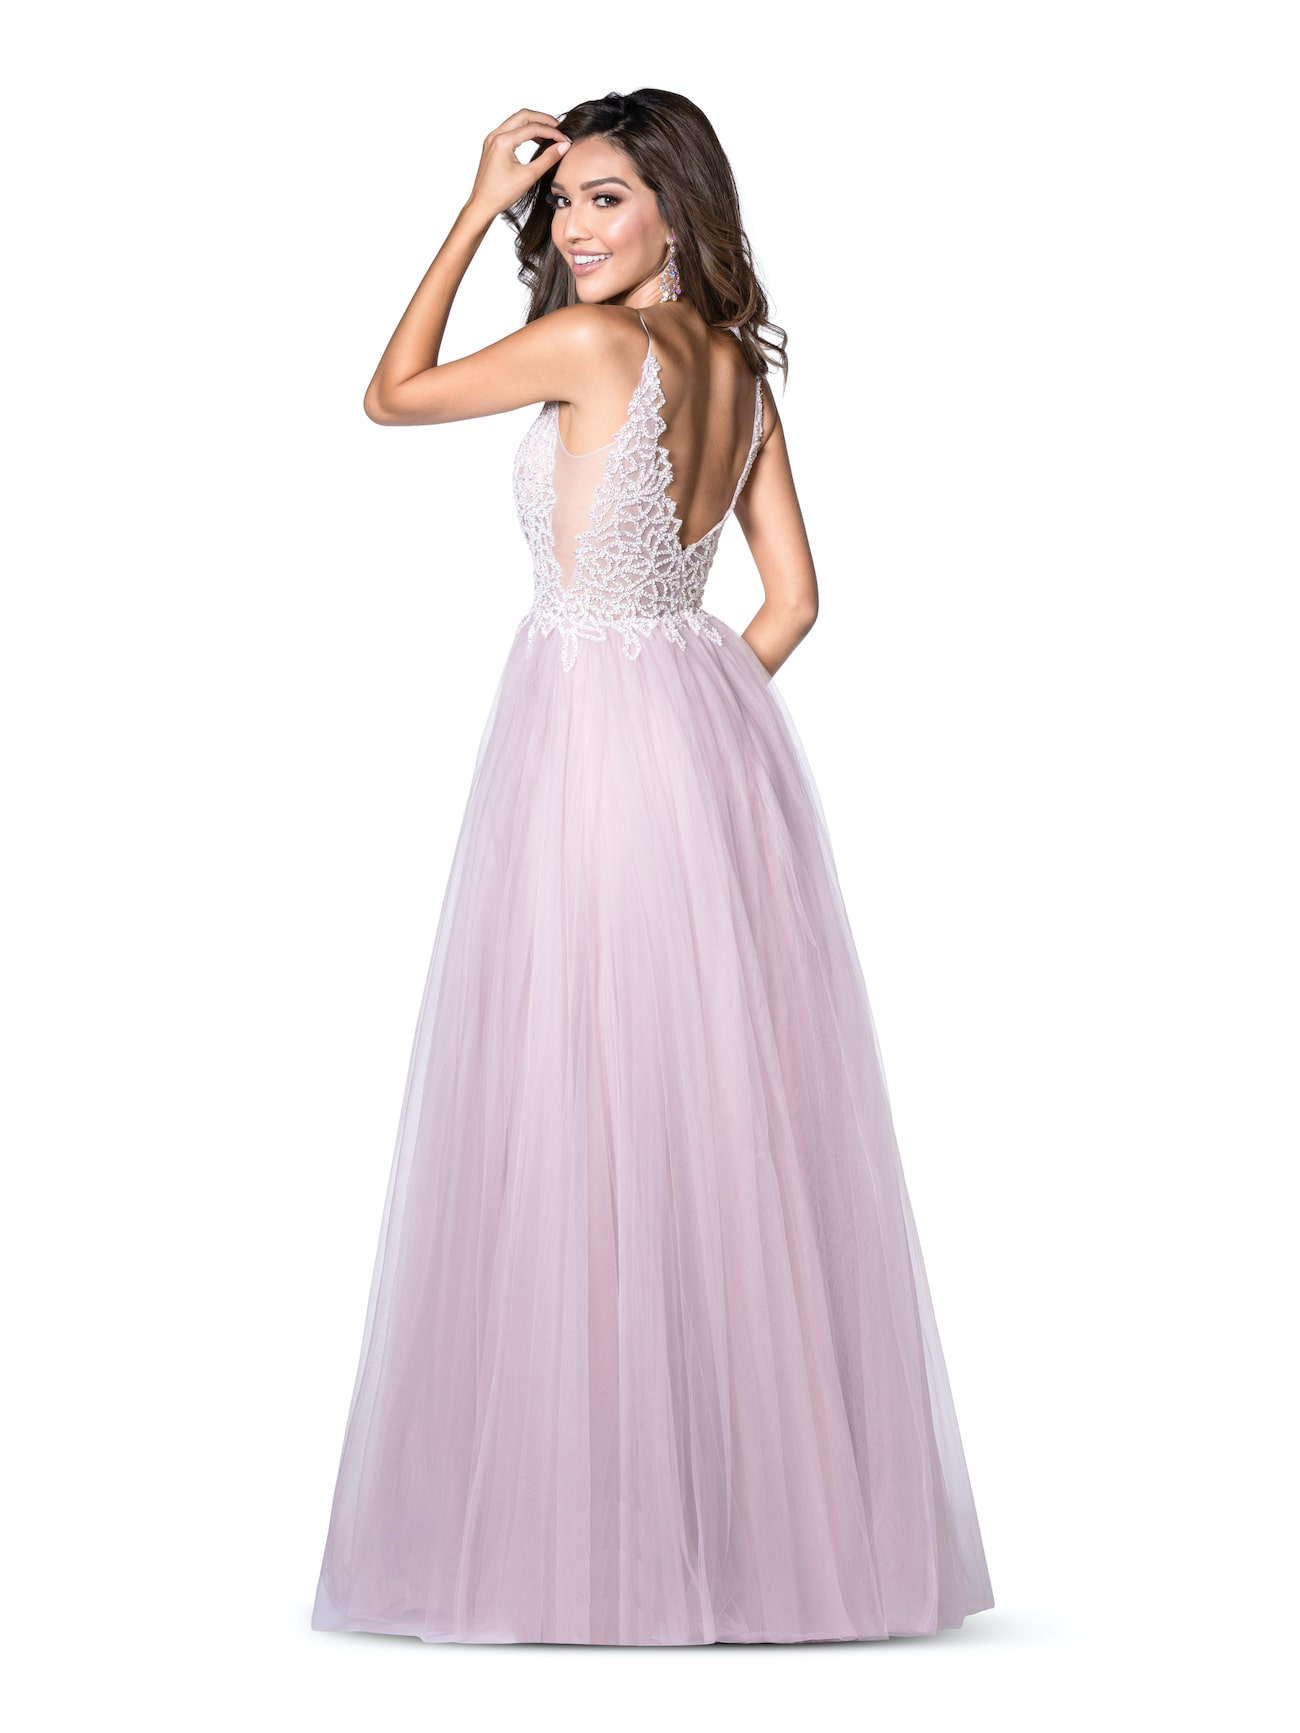 Vienna Pink Size 0 Prom Side slit Dress on Queenly